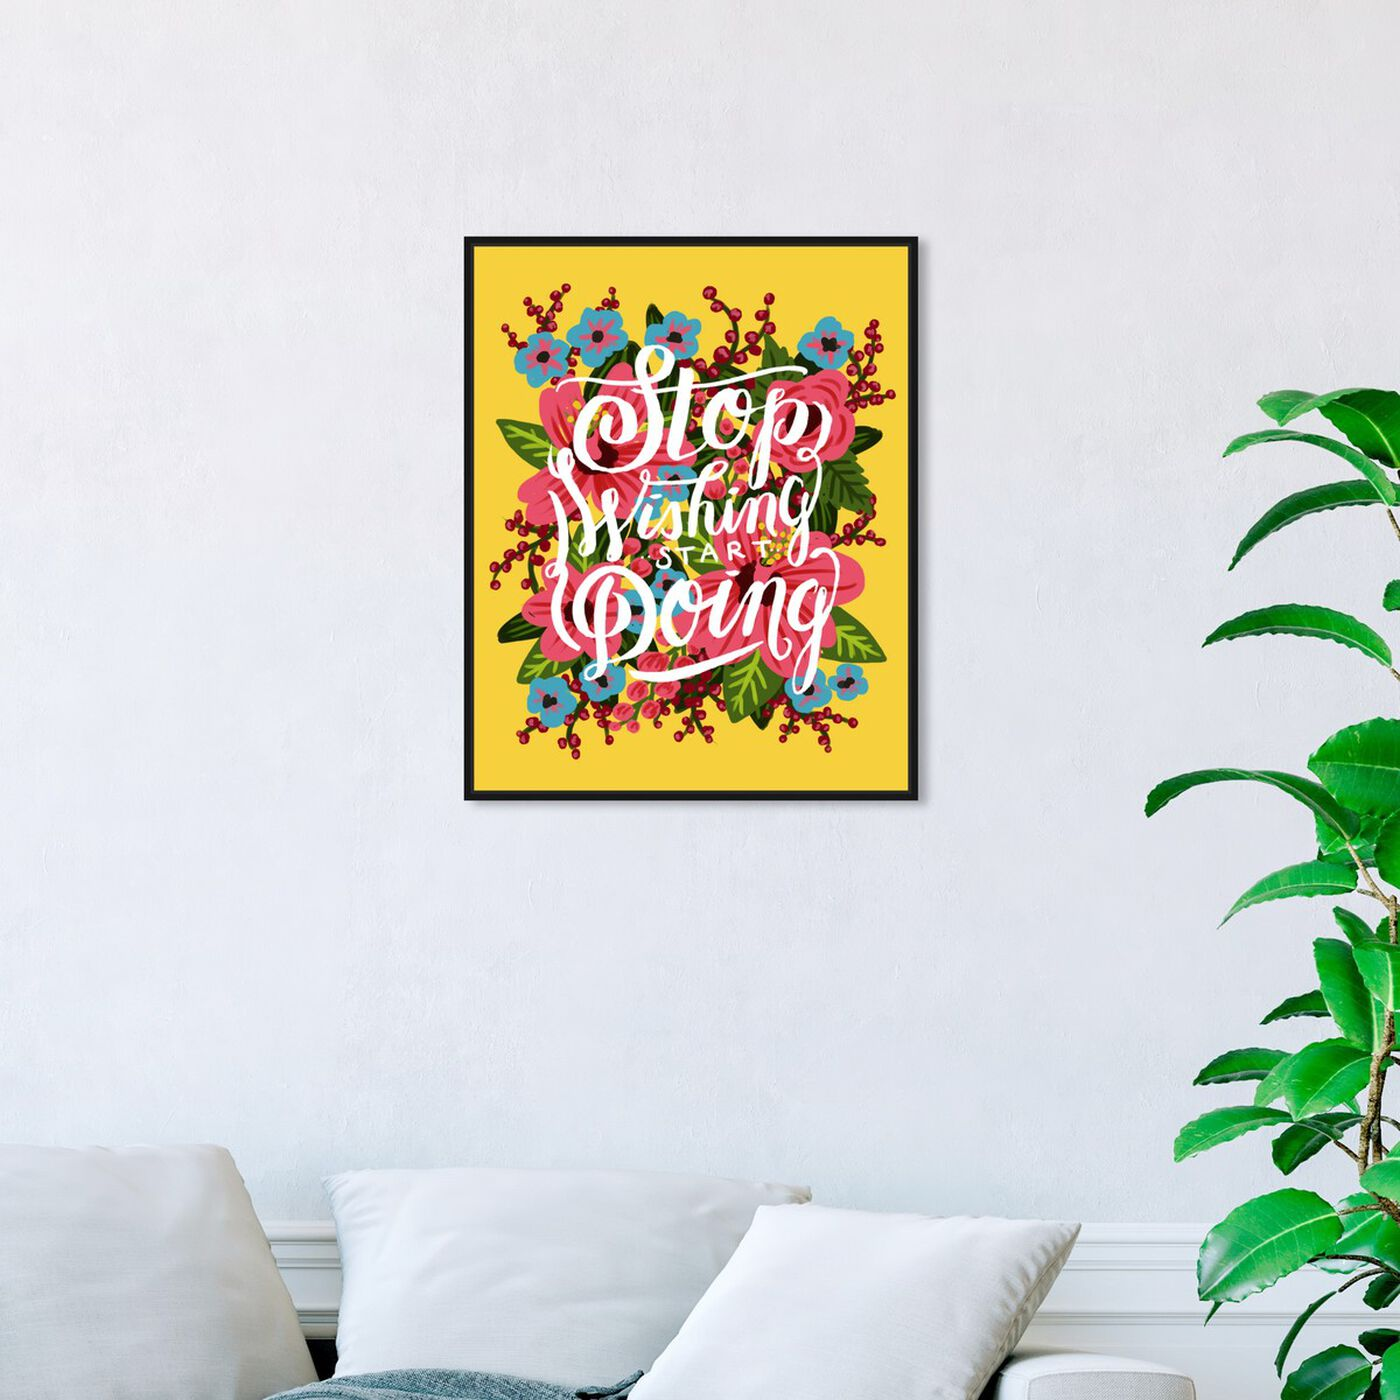 Hanging view of Start Doing featuring typography and quotes and motivational quotes and sayings art.